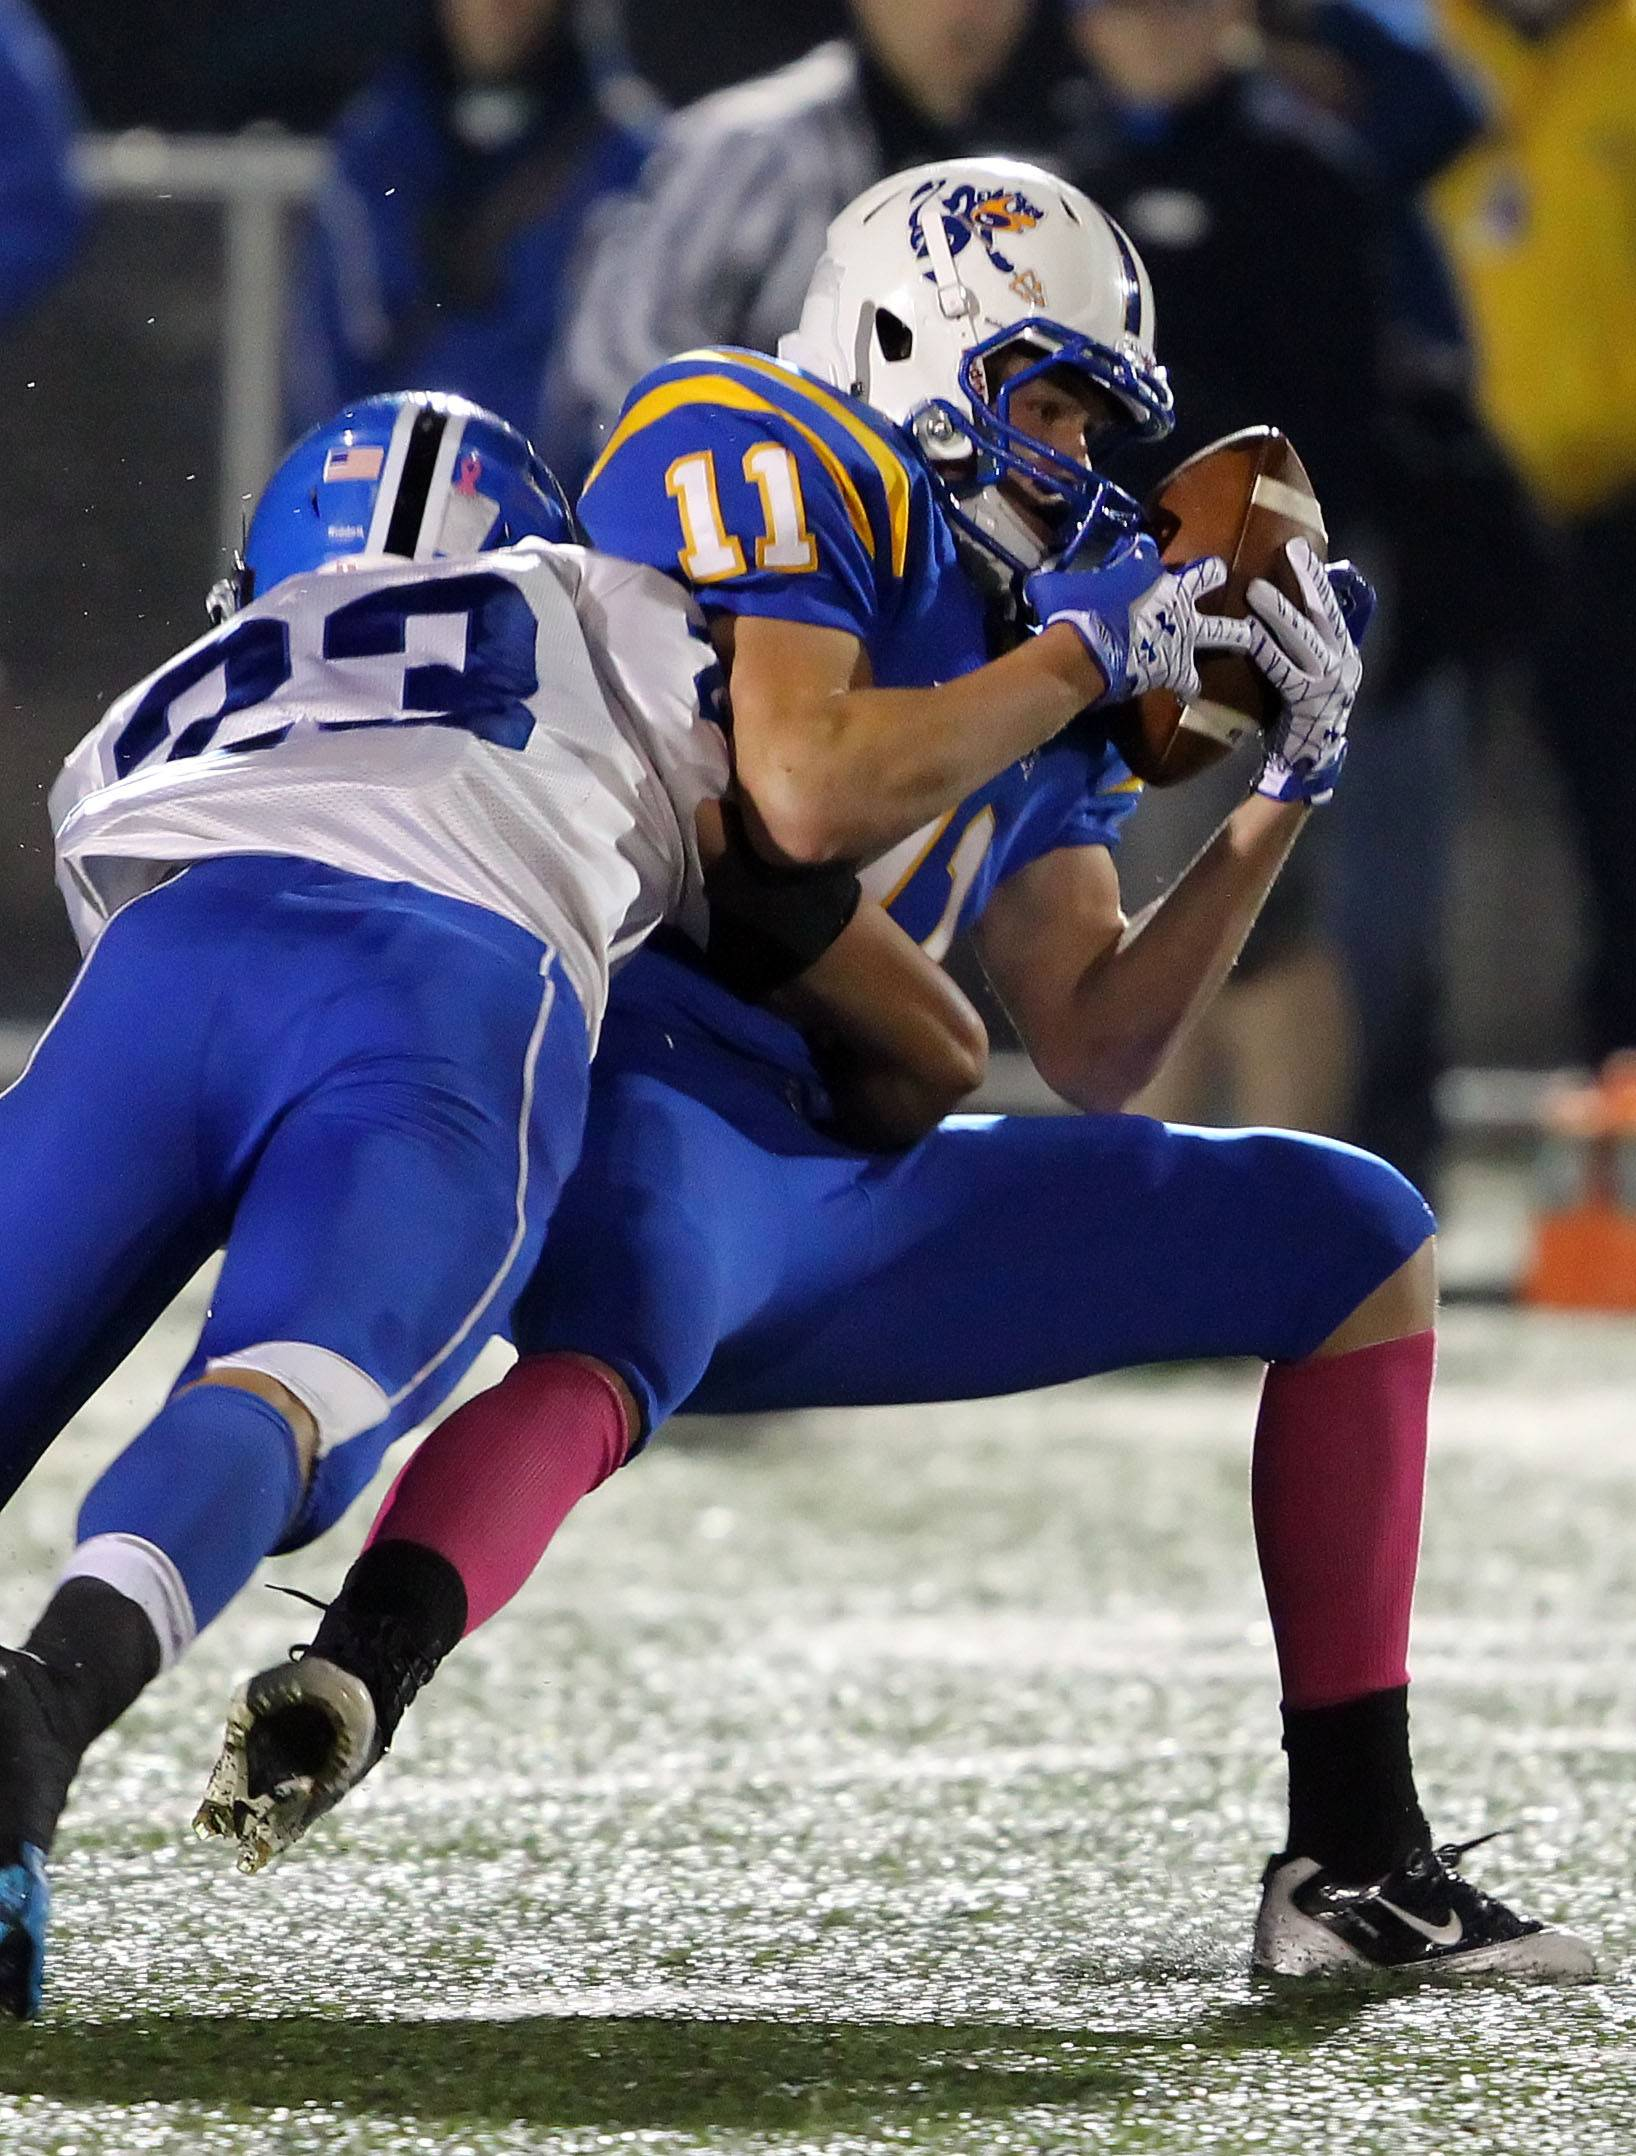 Players from Warren and Lake Zurich high schools clash in a 2012 game.